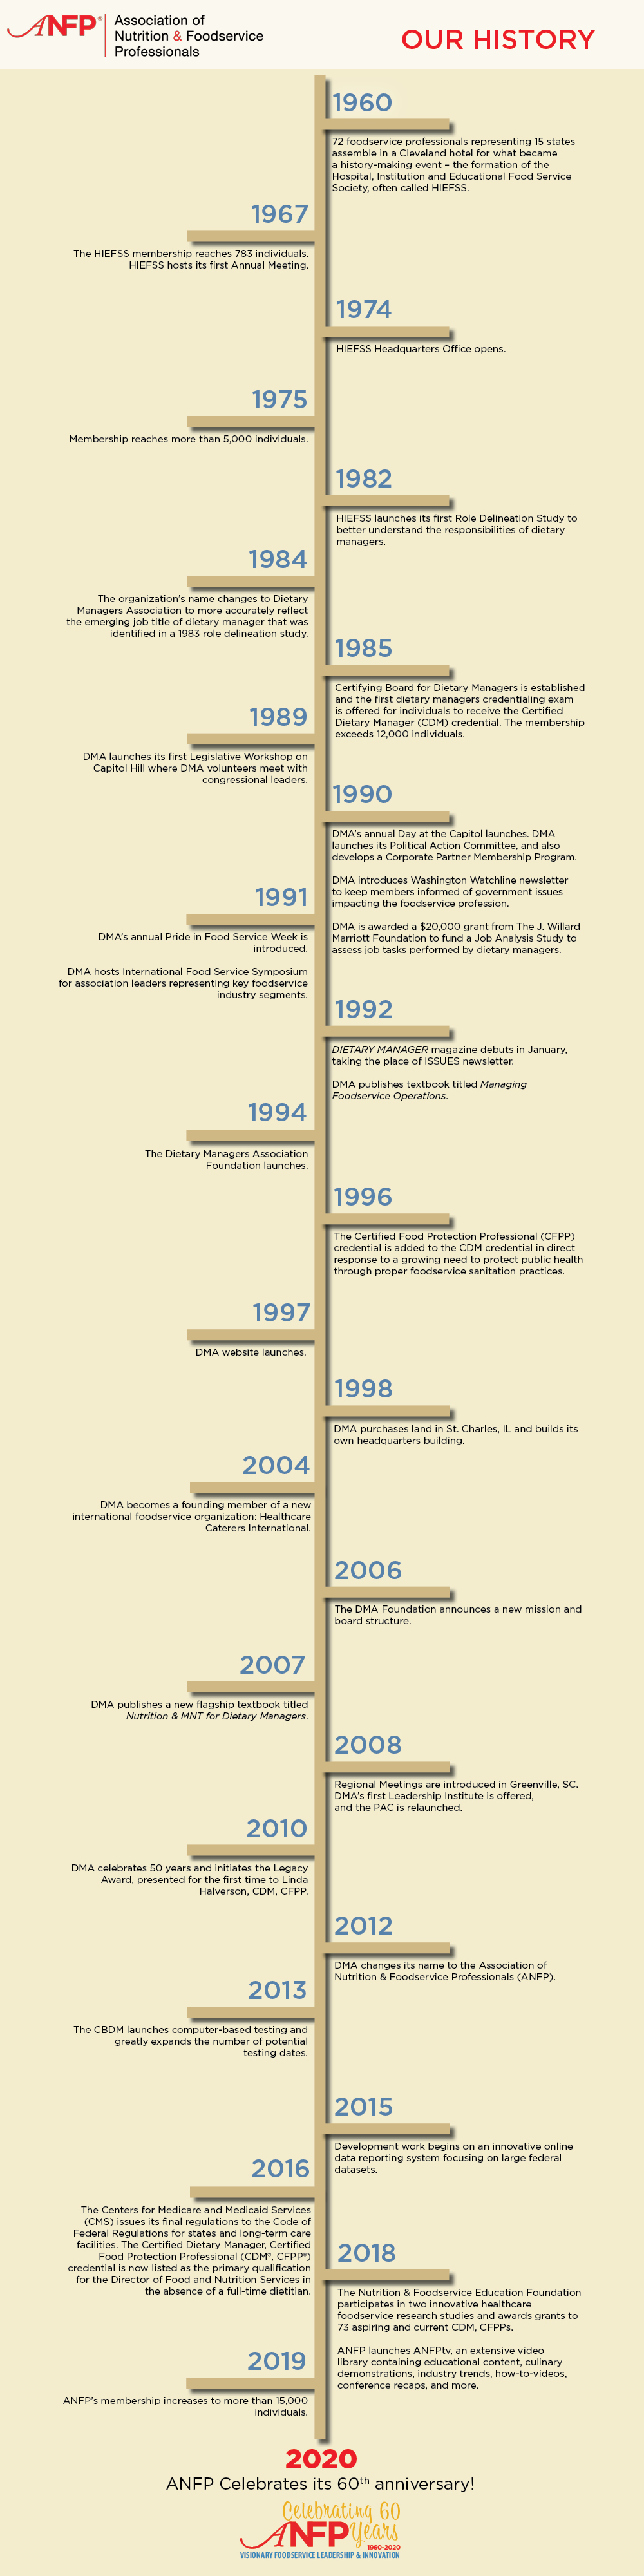 Timeline of ANFP History